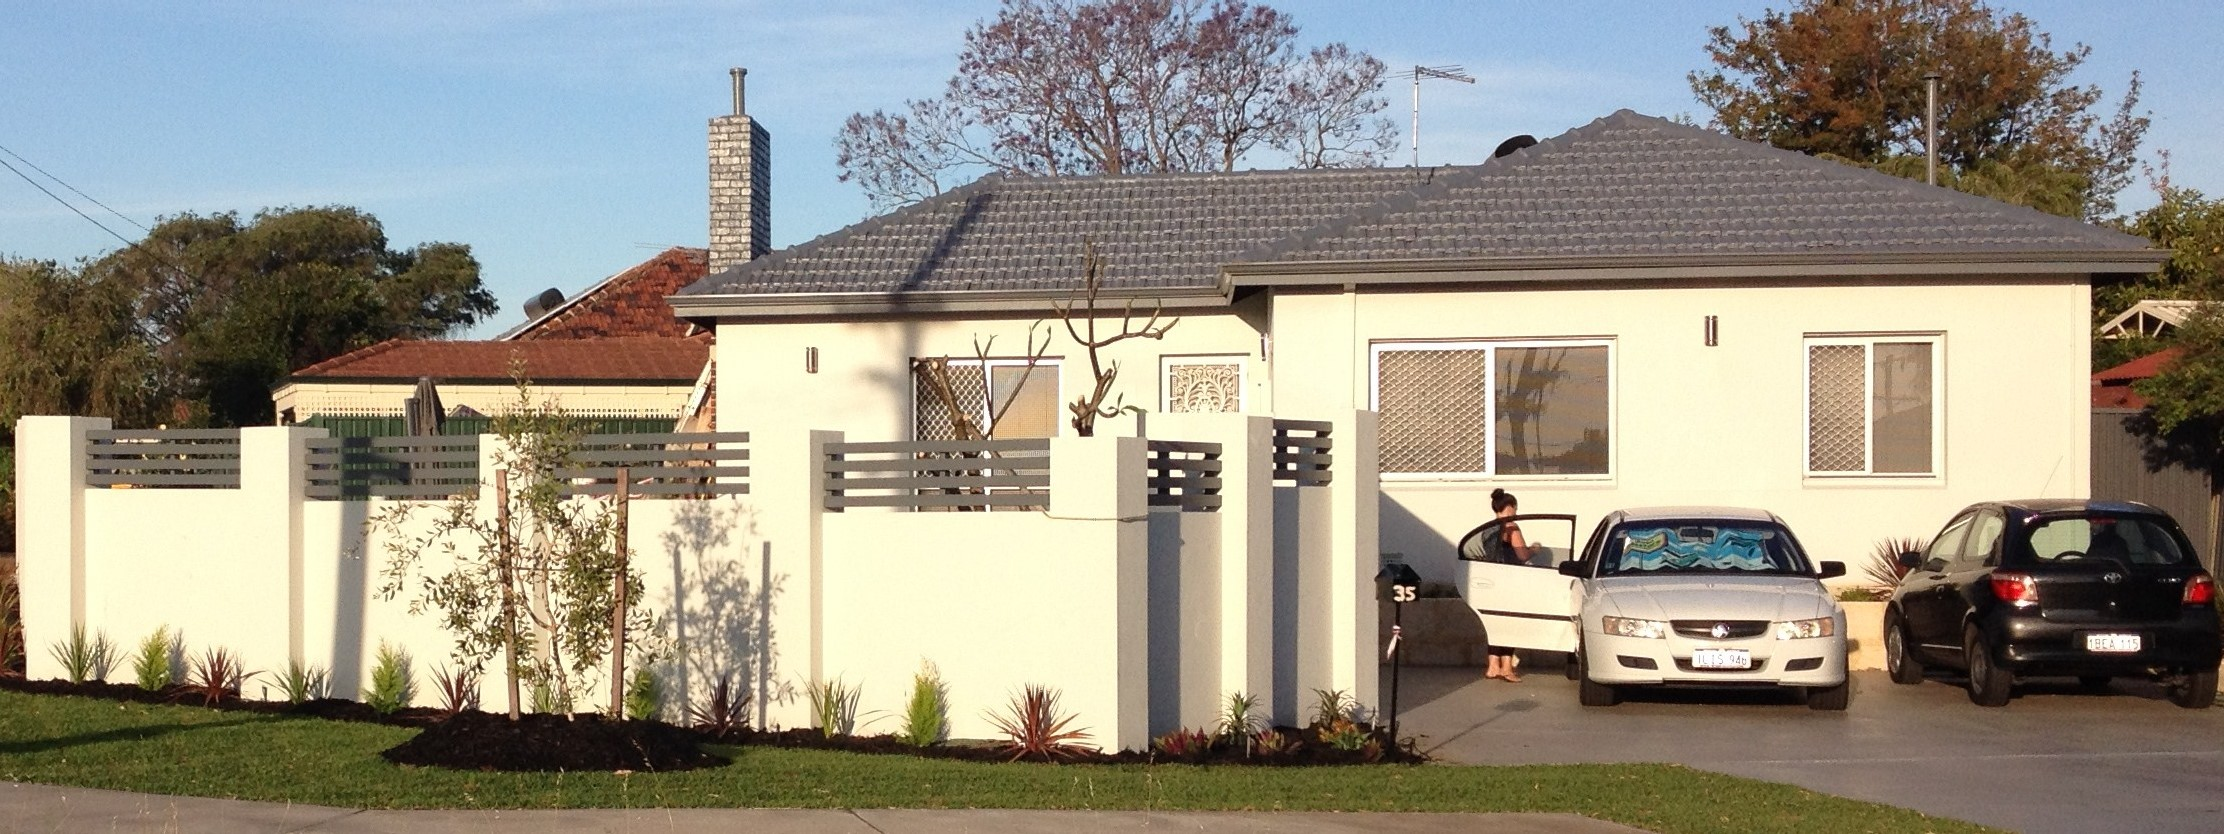 Freshly painted and residential home finished in light grey